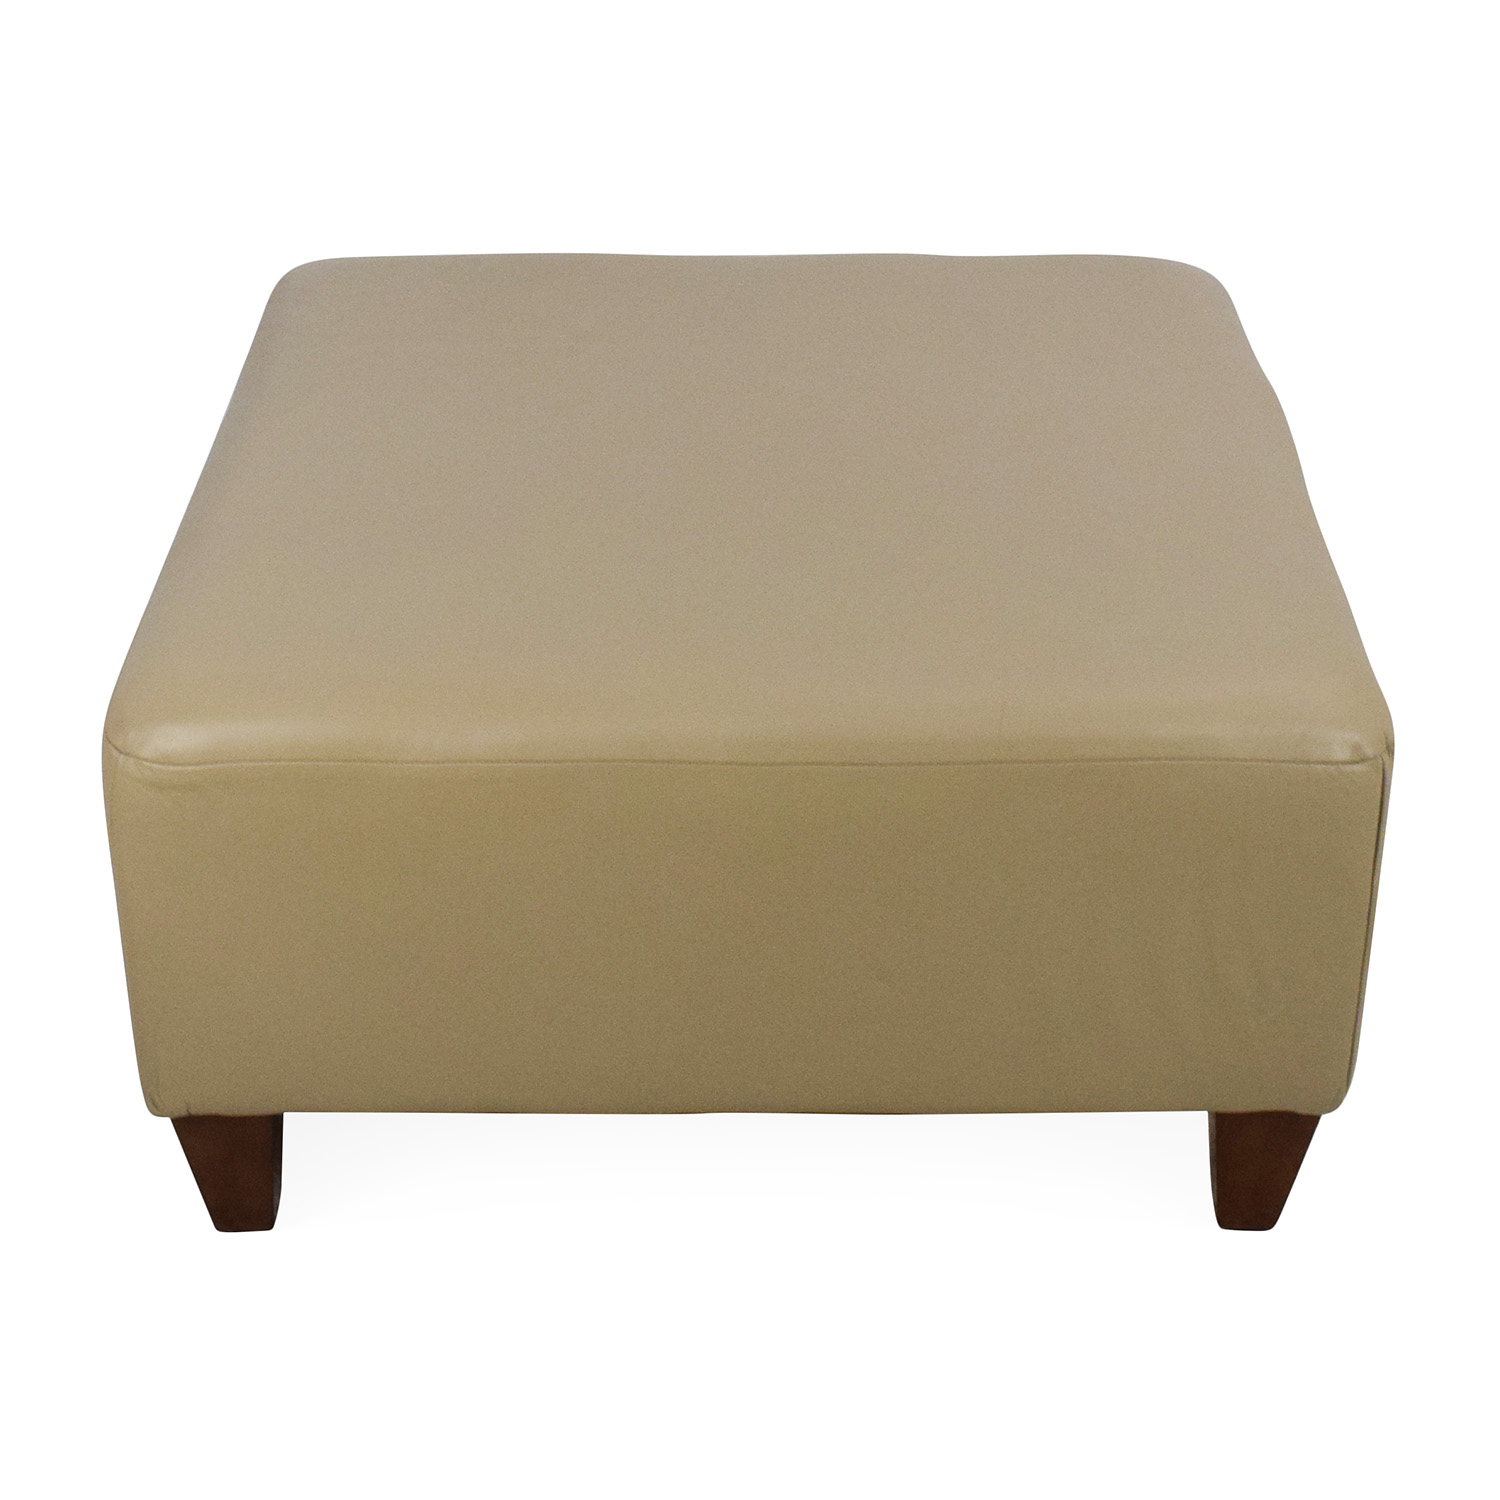 Ottomans Used Ottomans For Sale